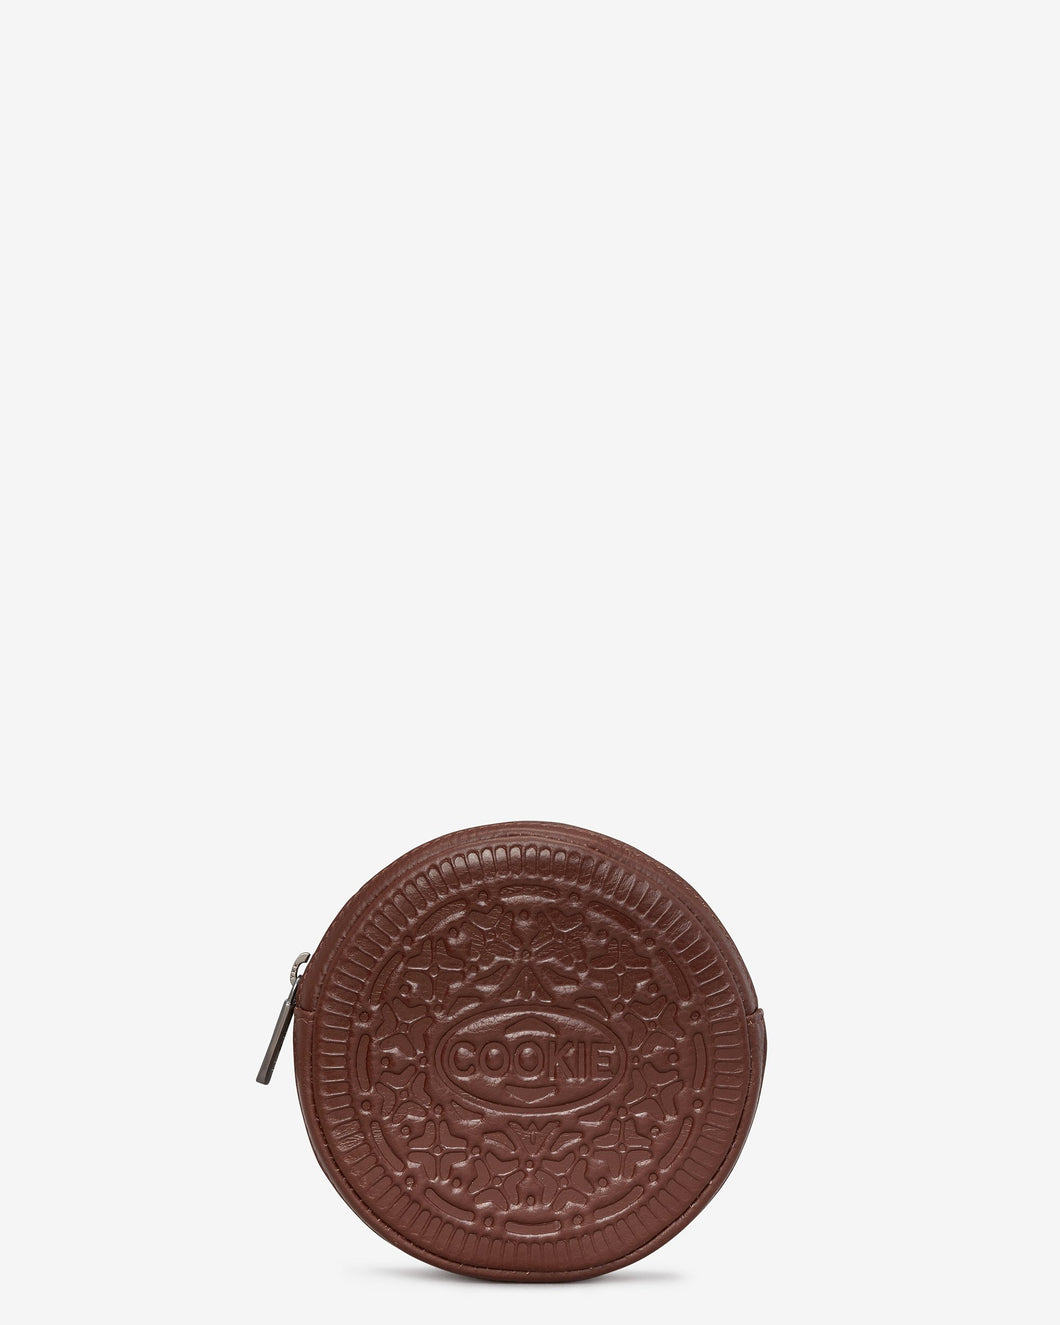 Cookie Biscuit Zip Round Leather Purse - Bluebells of Bath